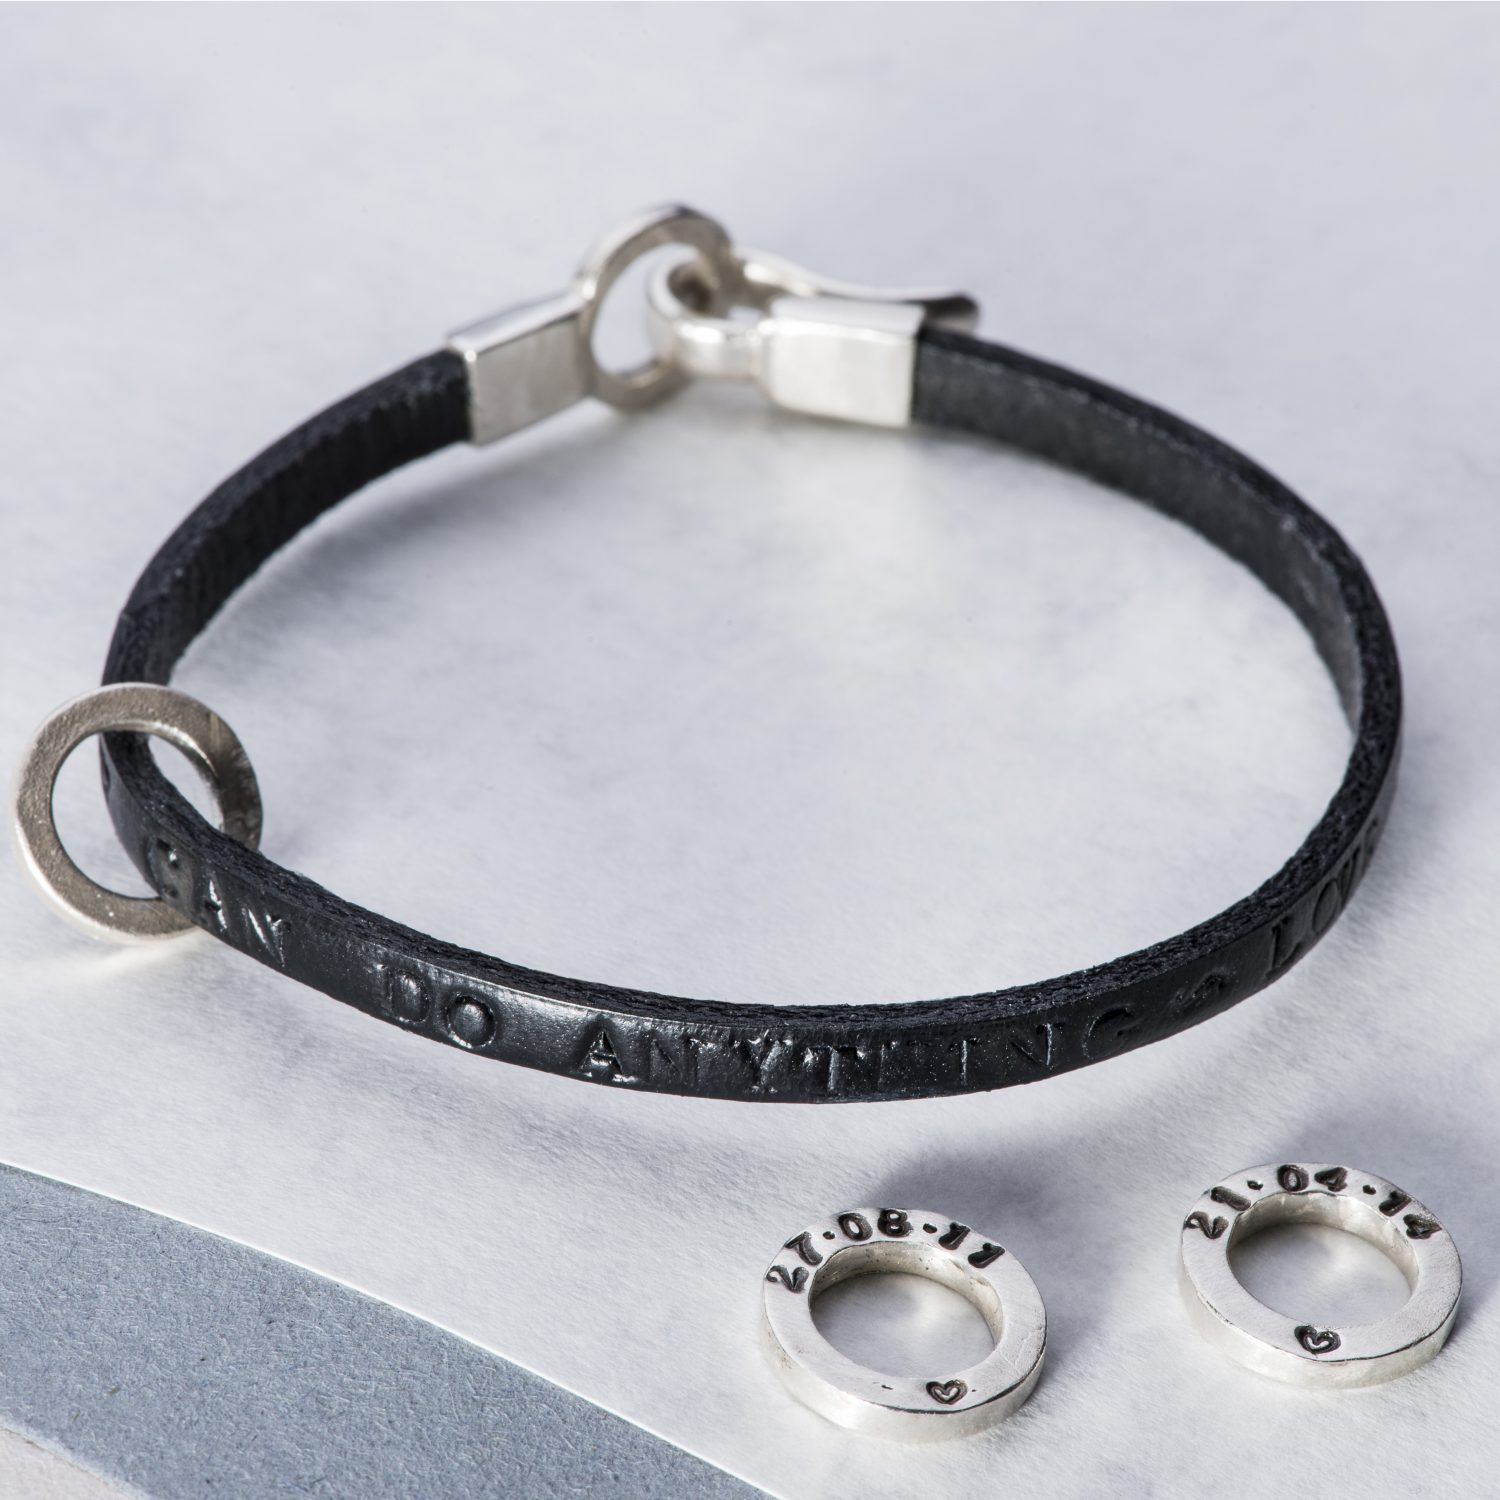 Personalised Men's bracelet in leather with silver charm